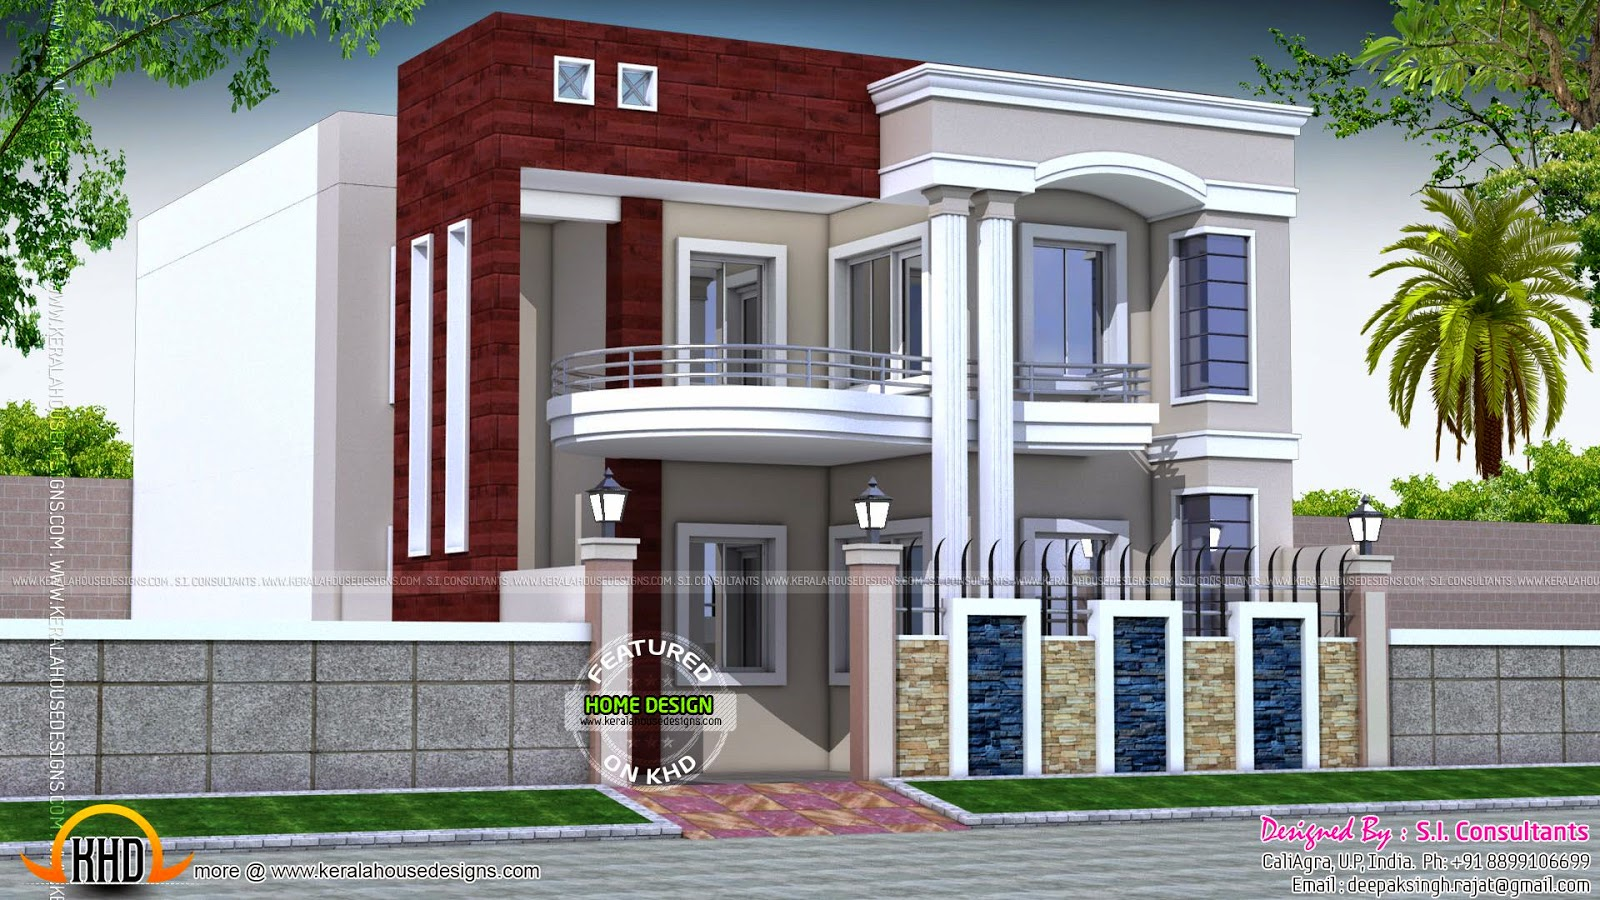 House design in north india kerala home design and floor for House architecture styles in india